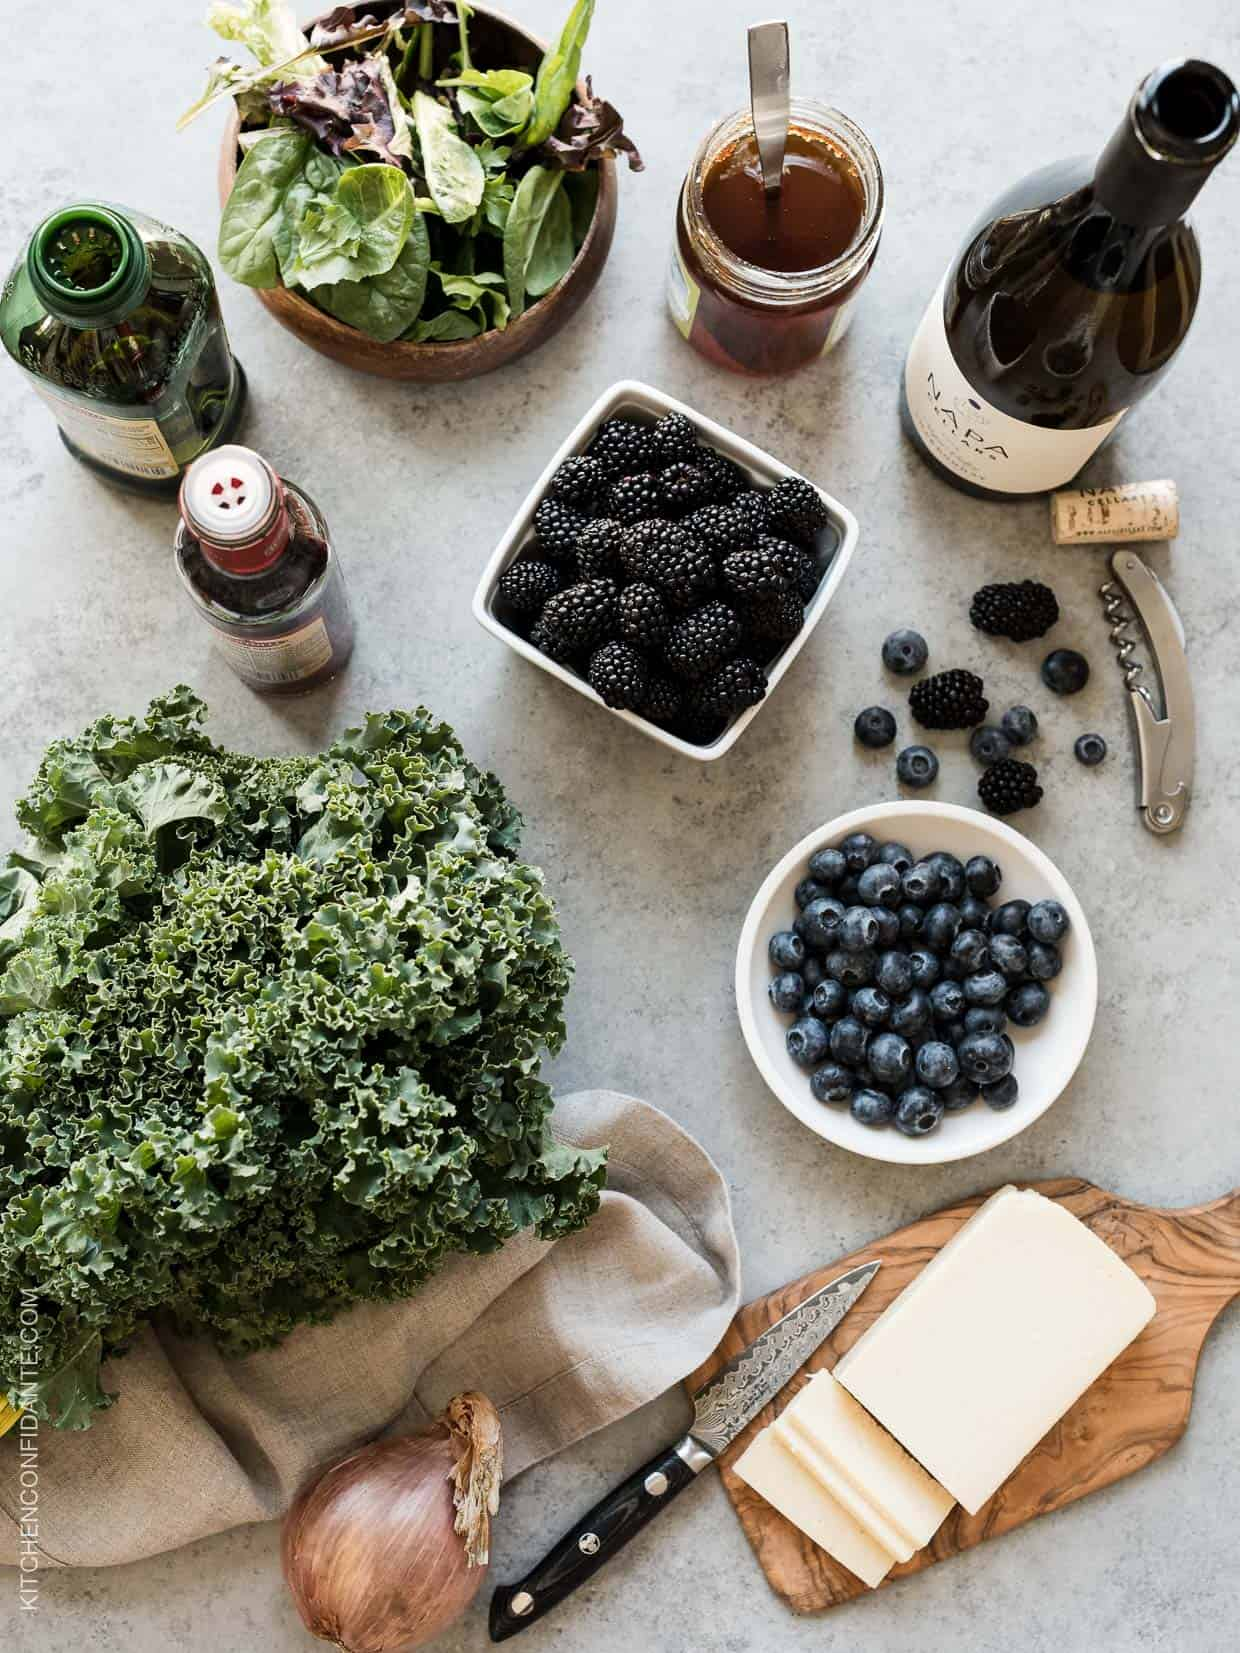 Havarti cheese, fresh blueberries, blackberries and kale on a rustic surface.